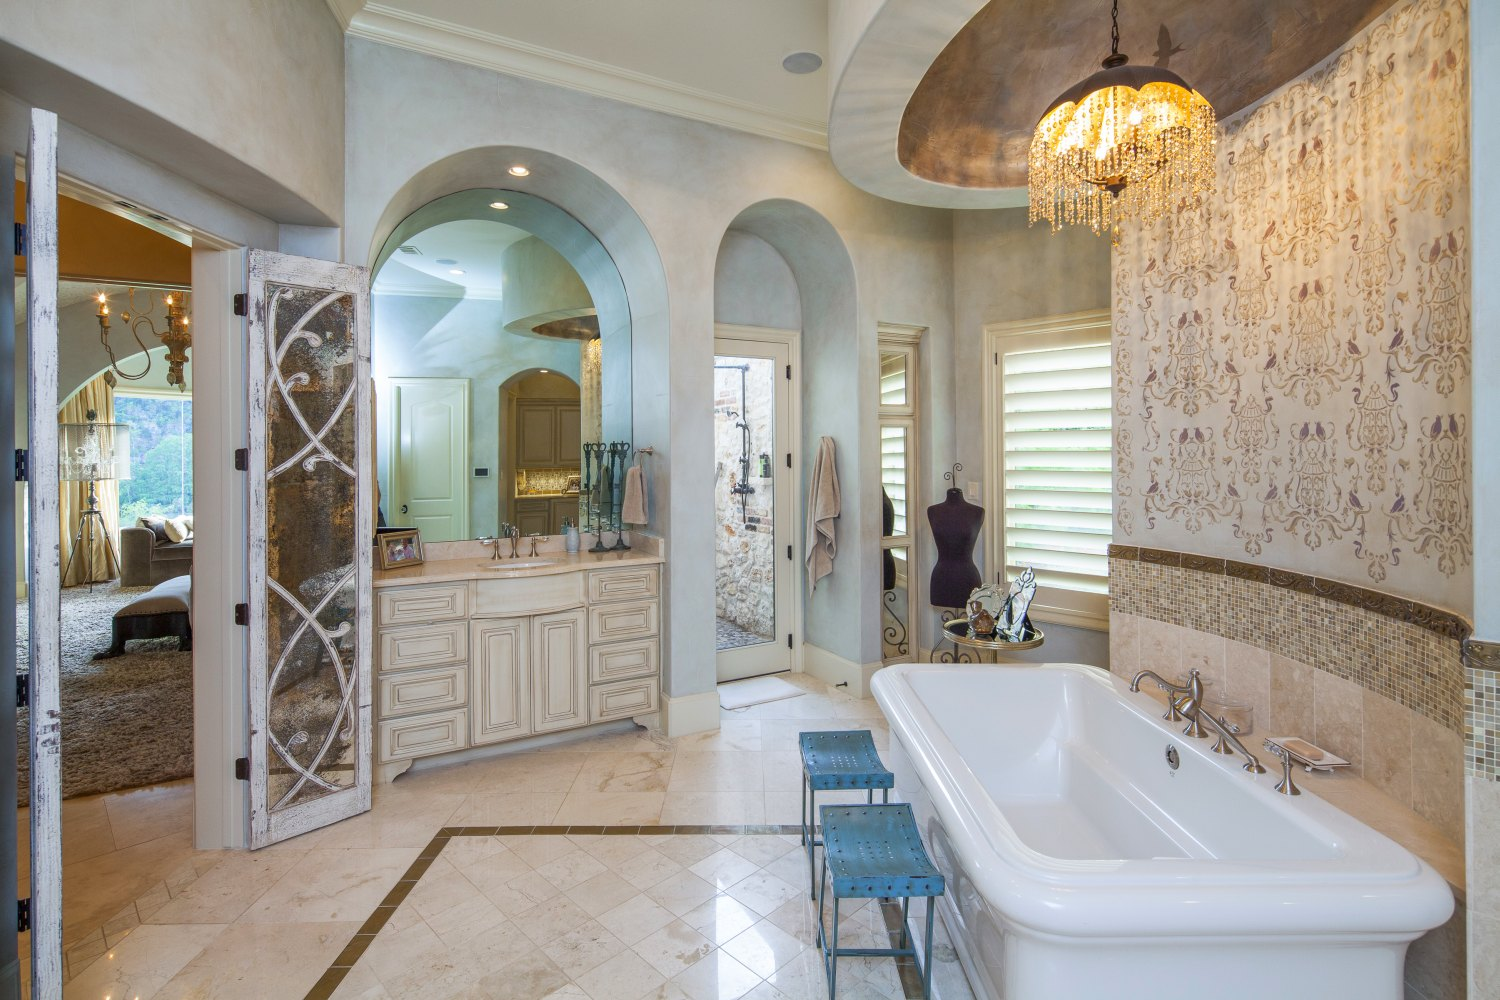 Architecture Home Eclectic old world bathroom